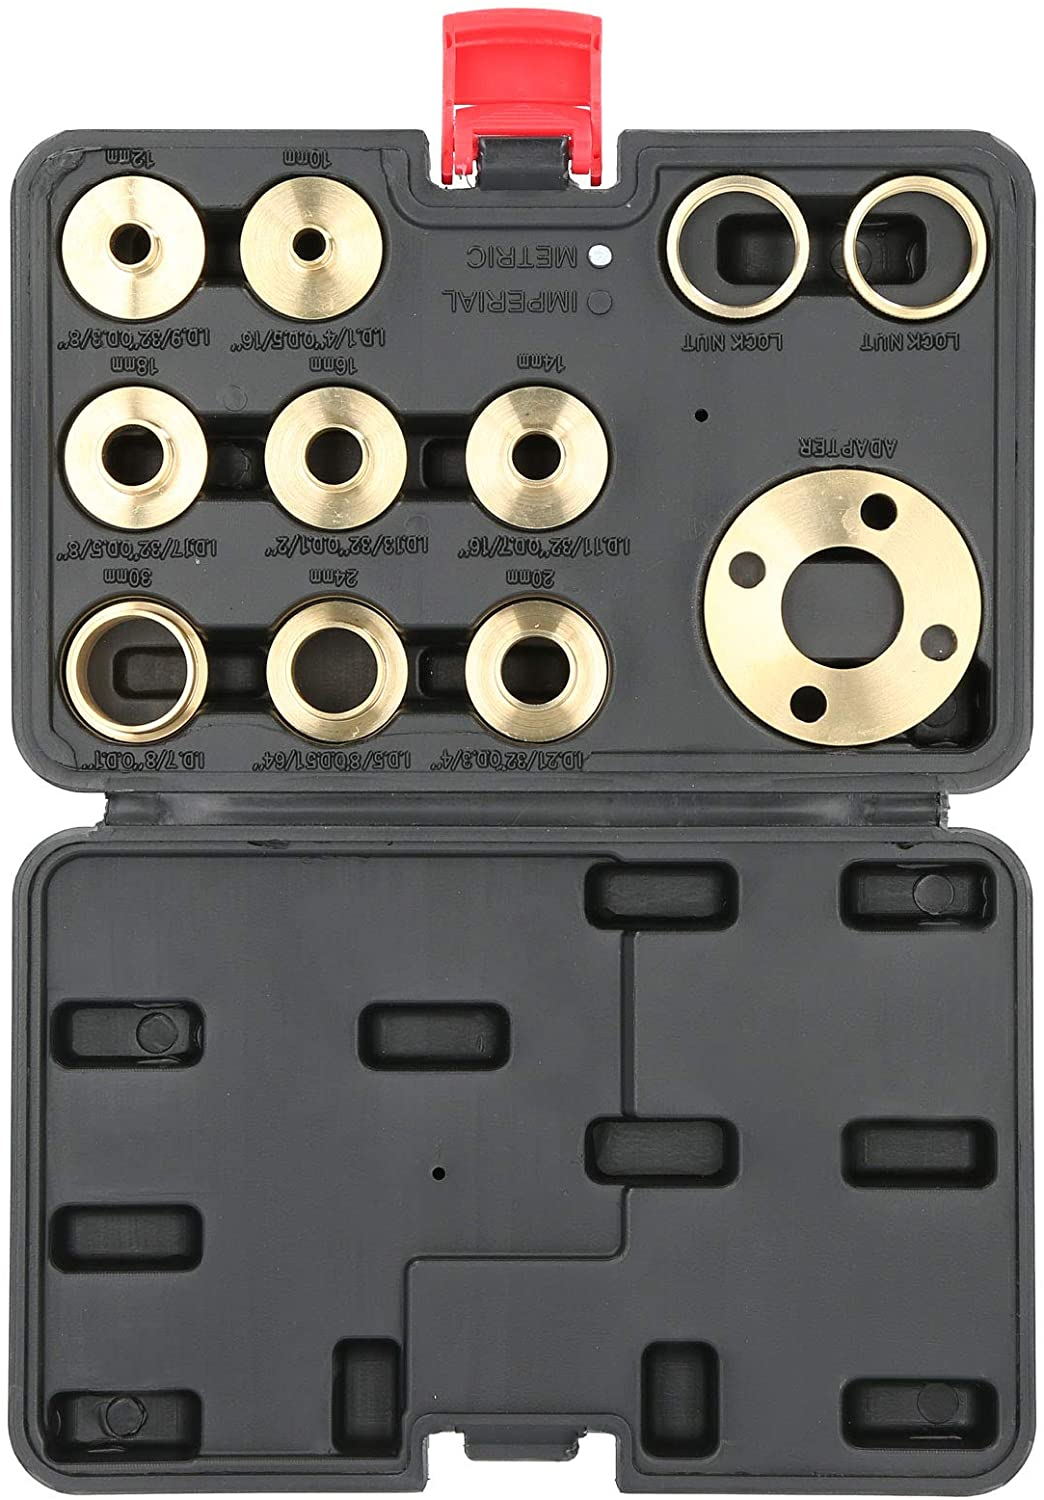 Router Accessory Brass Template Router Guides Kit with Lock Nut Adapter with Storage Case 11Pcs//Set Router Template Guide Set